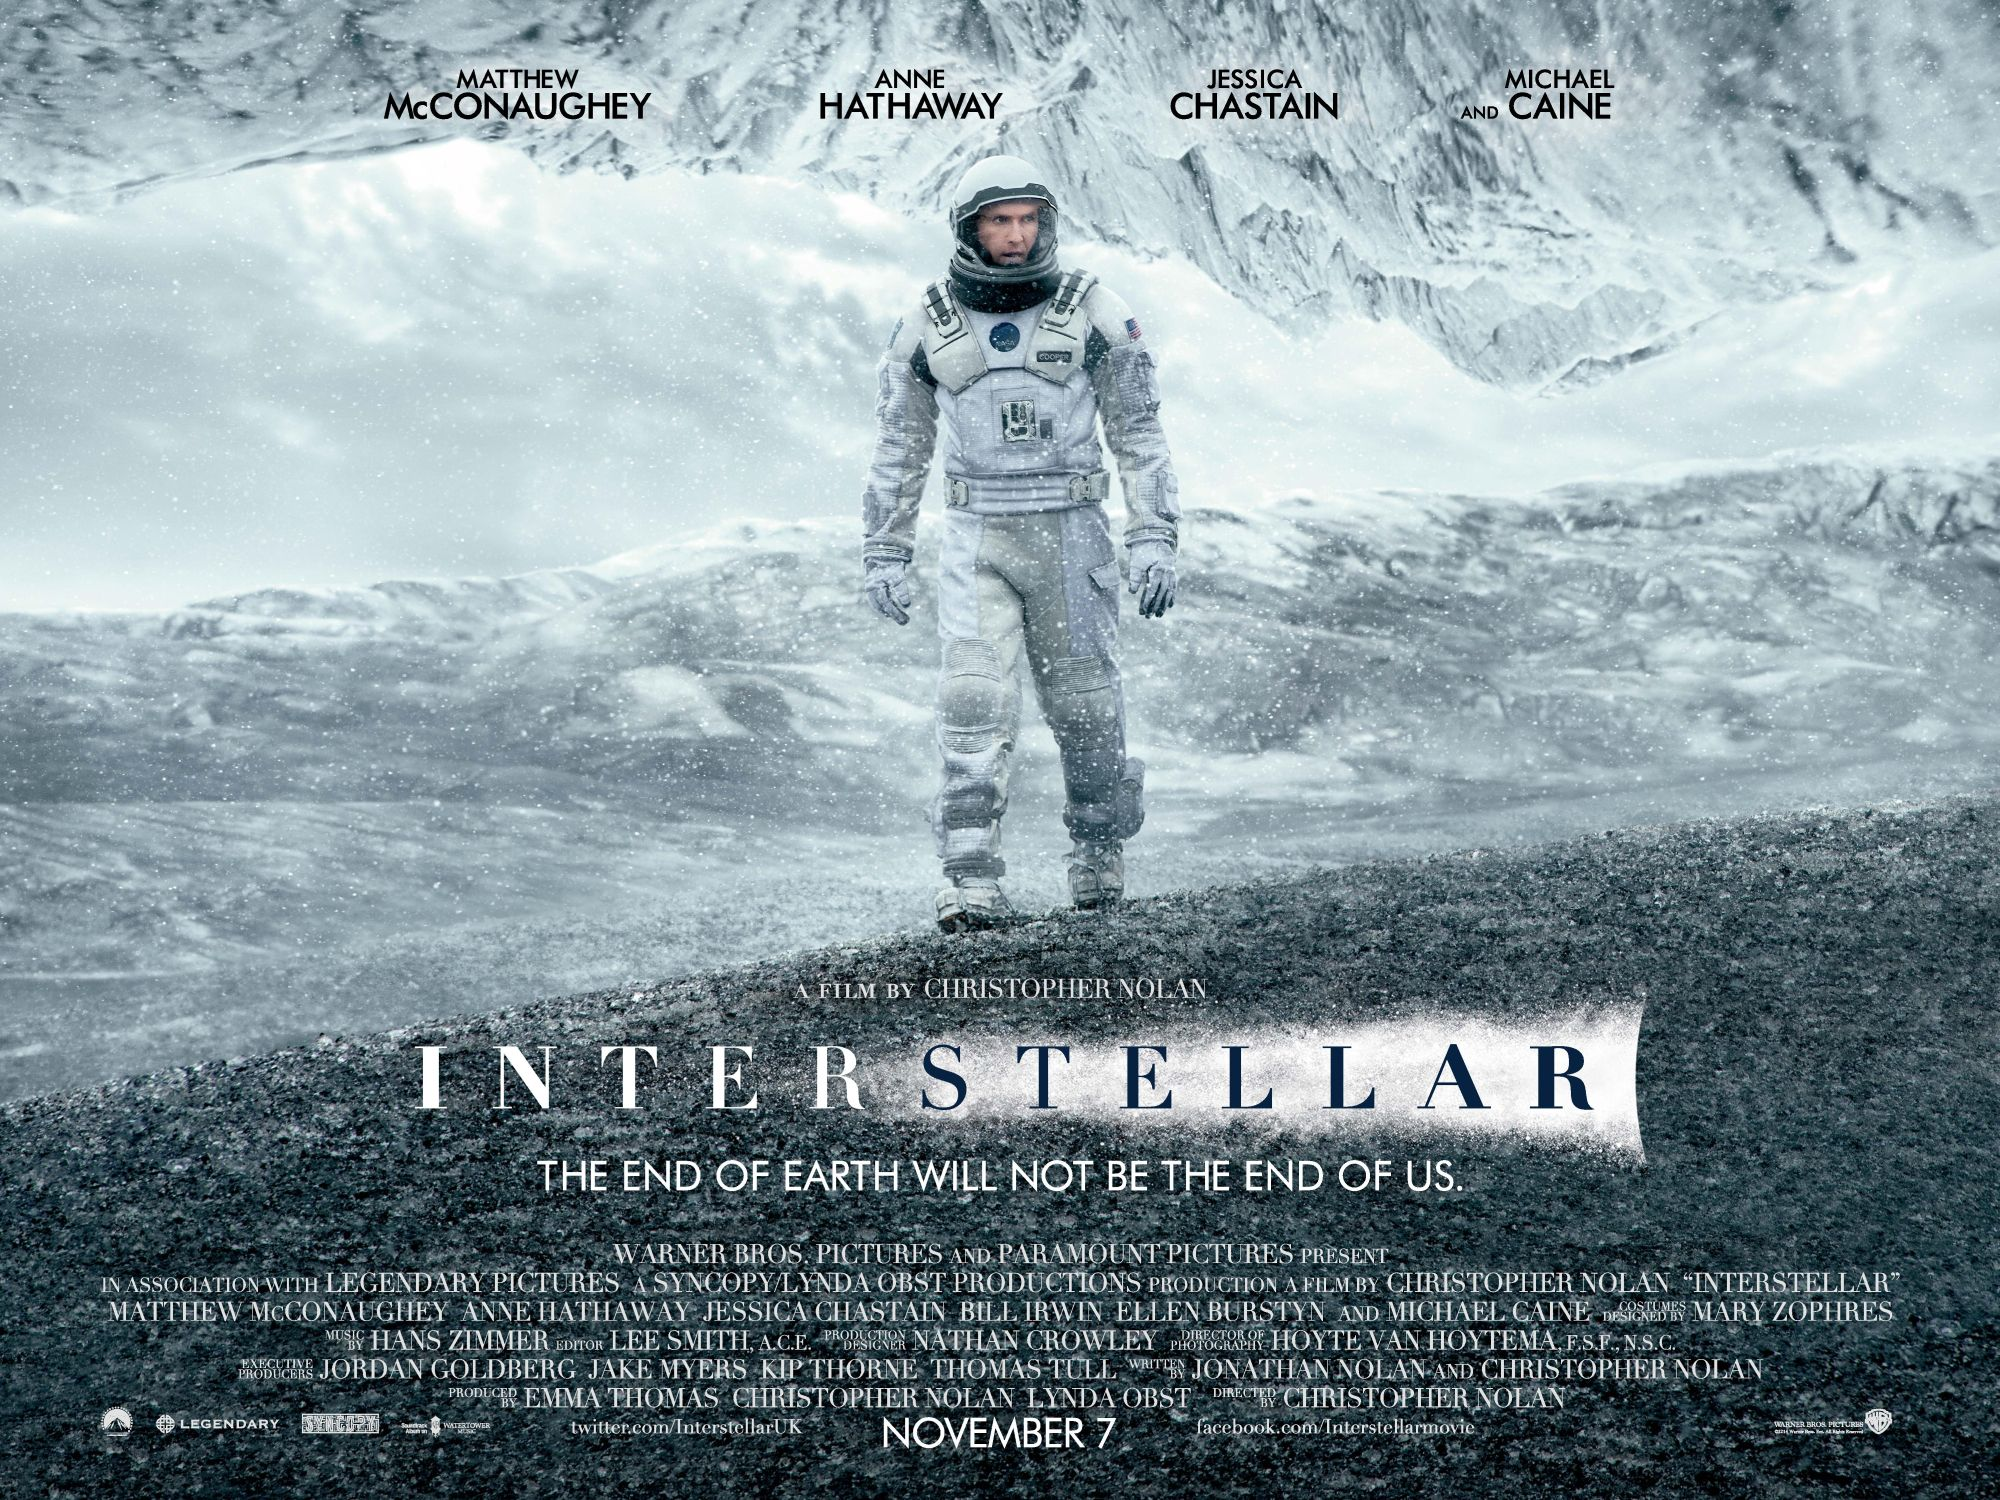 interstellar poster - Antedote